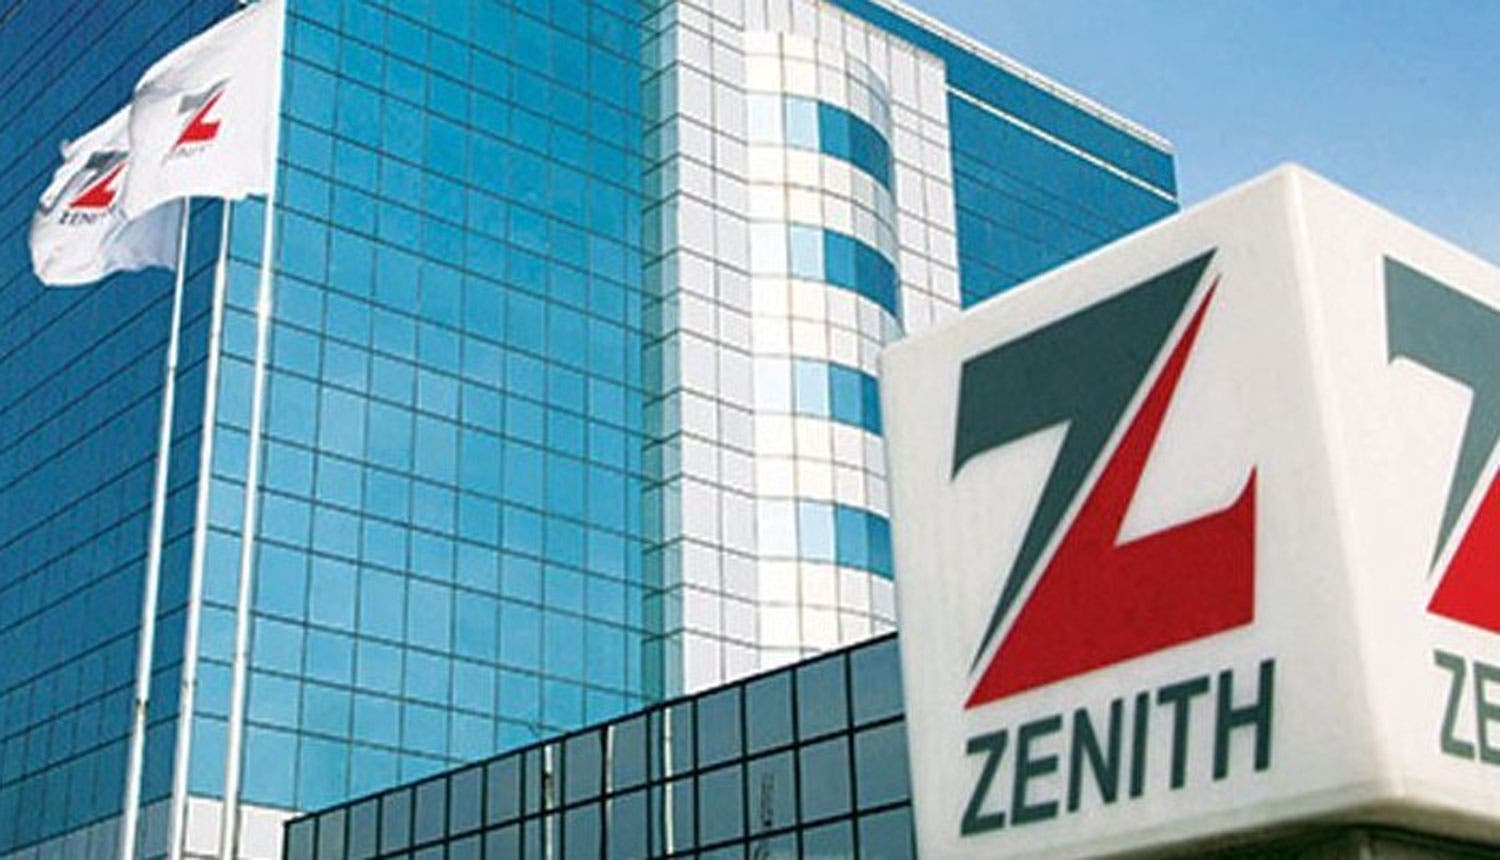 Zenith Bank showers shareholders with N94.19bn dividend